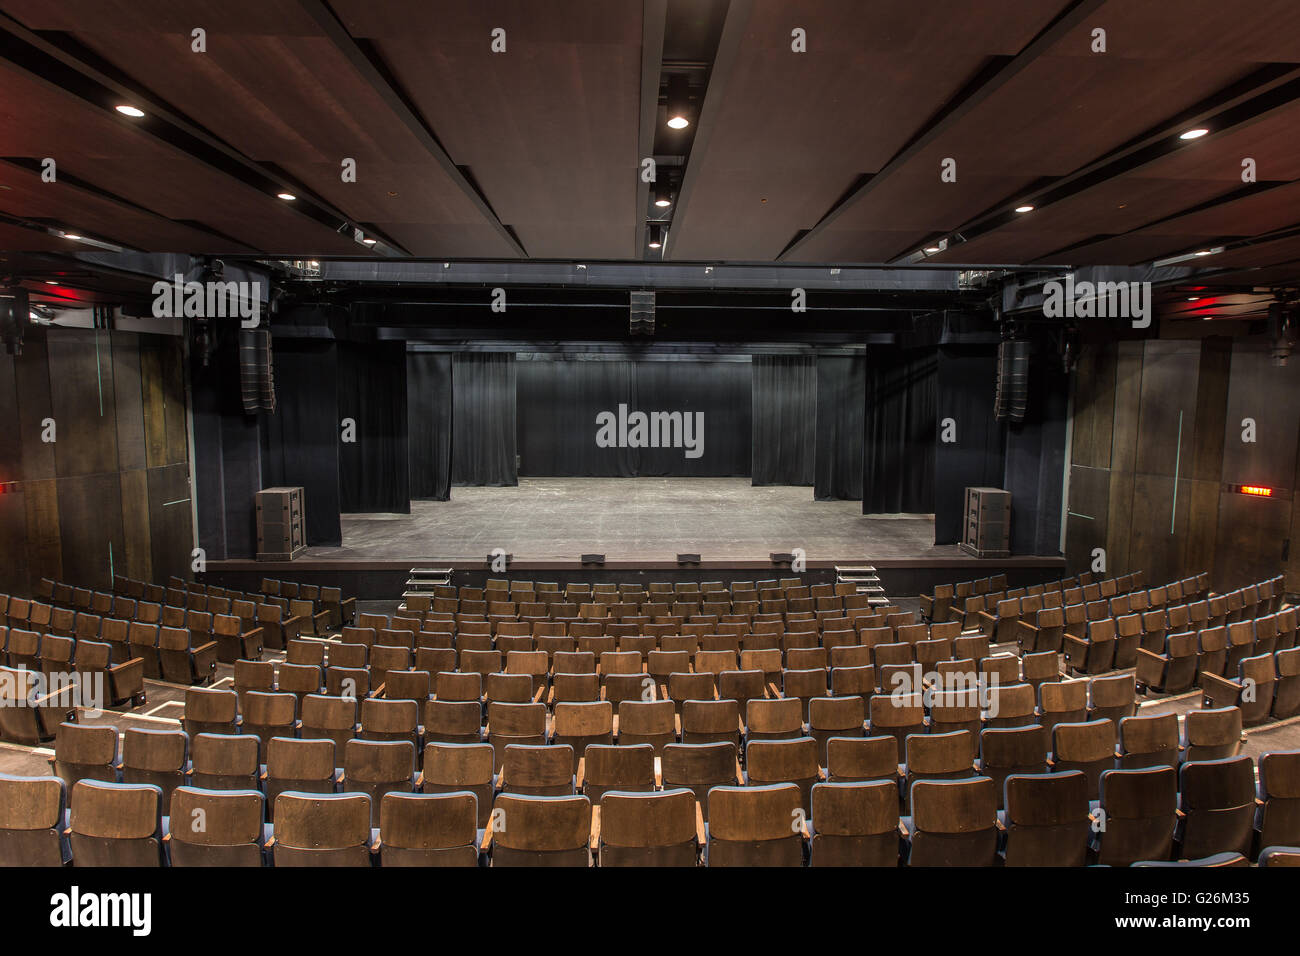 Salle Octave Cremazie Hall is pictured in the Grand Theatre de Quebec arts complex in Quebec city, April 6, 2016. - Stock Image